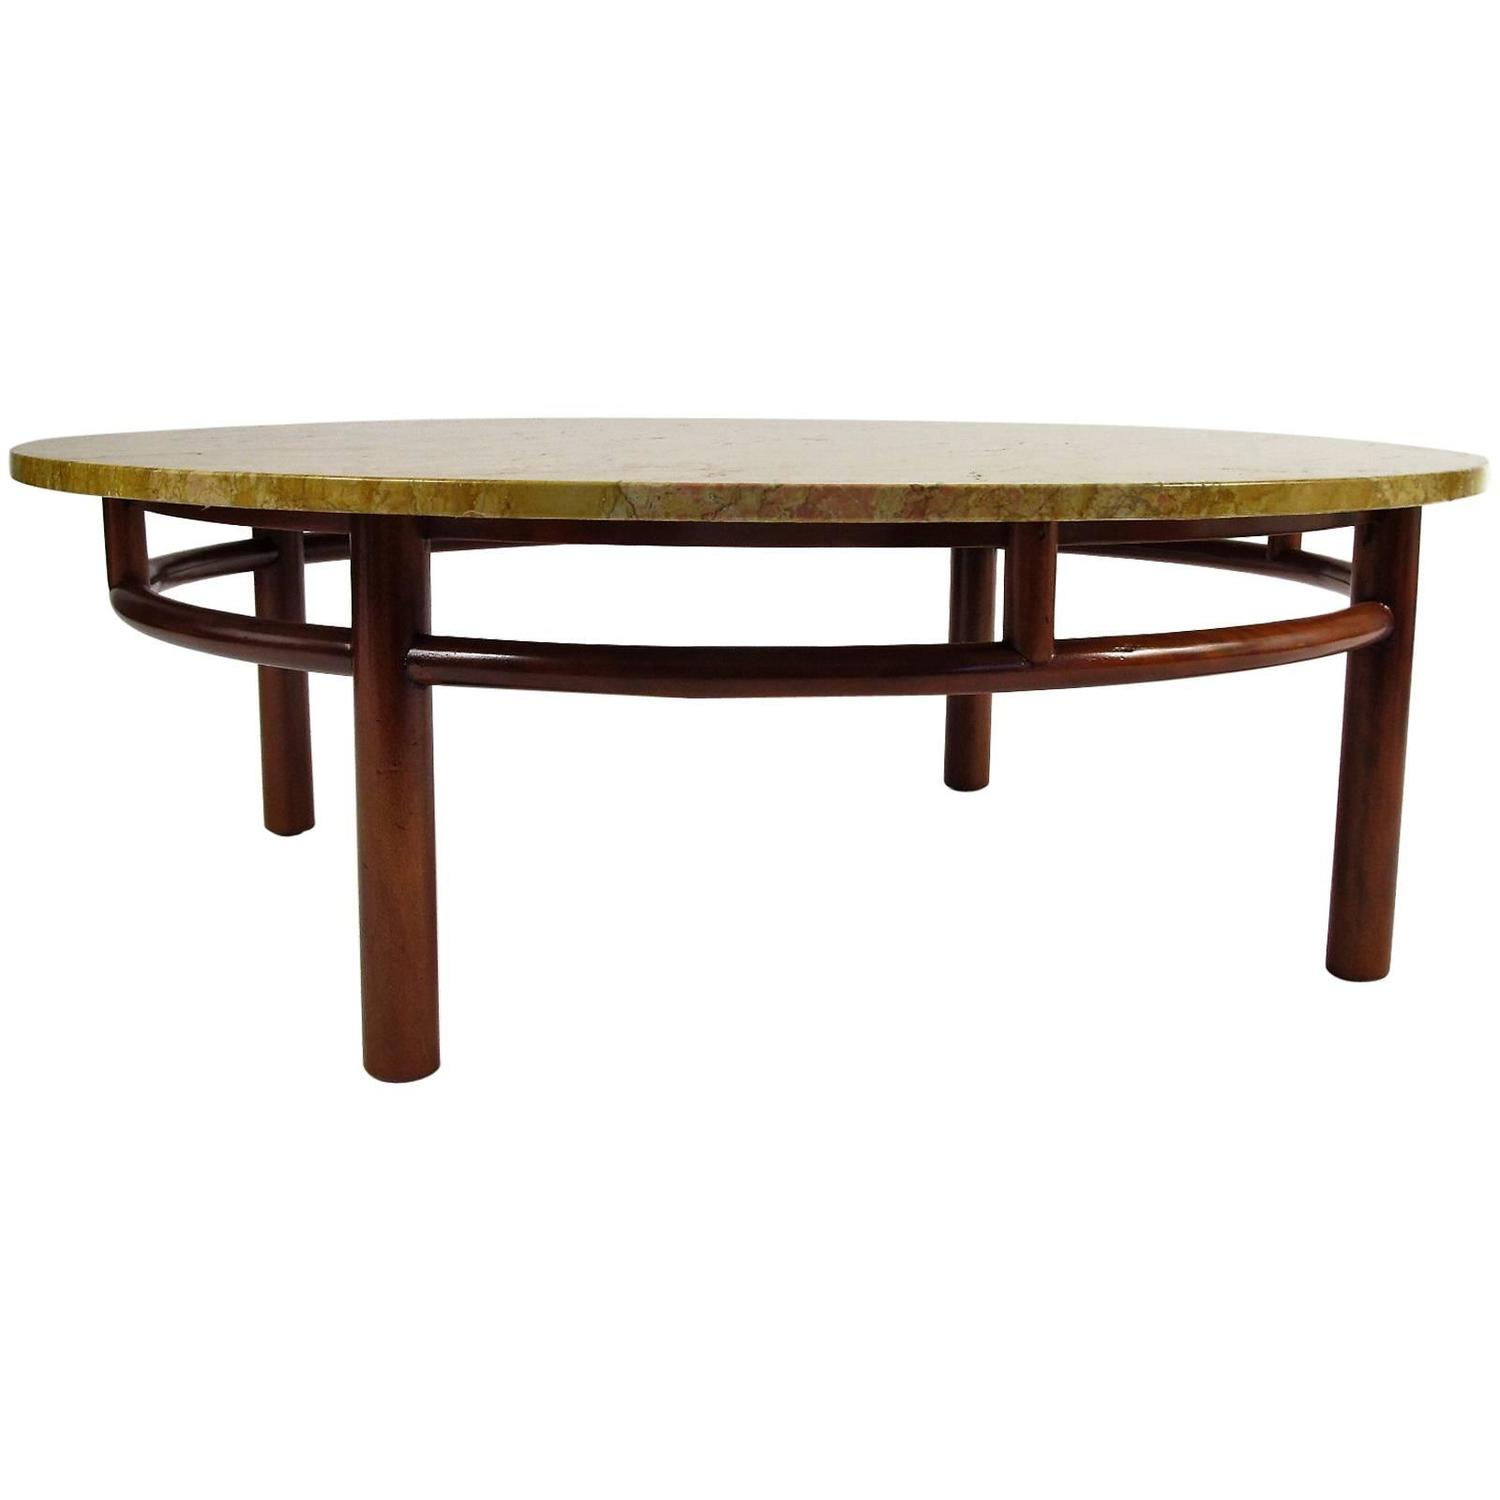 T h robsjohn gibbings marble round coffee table for widdicomb at 1stdibs Round marble coffee tables